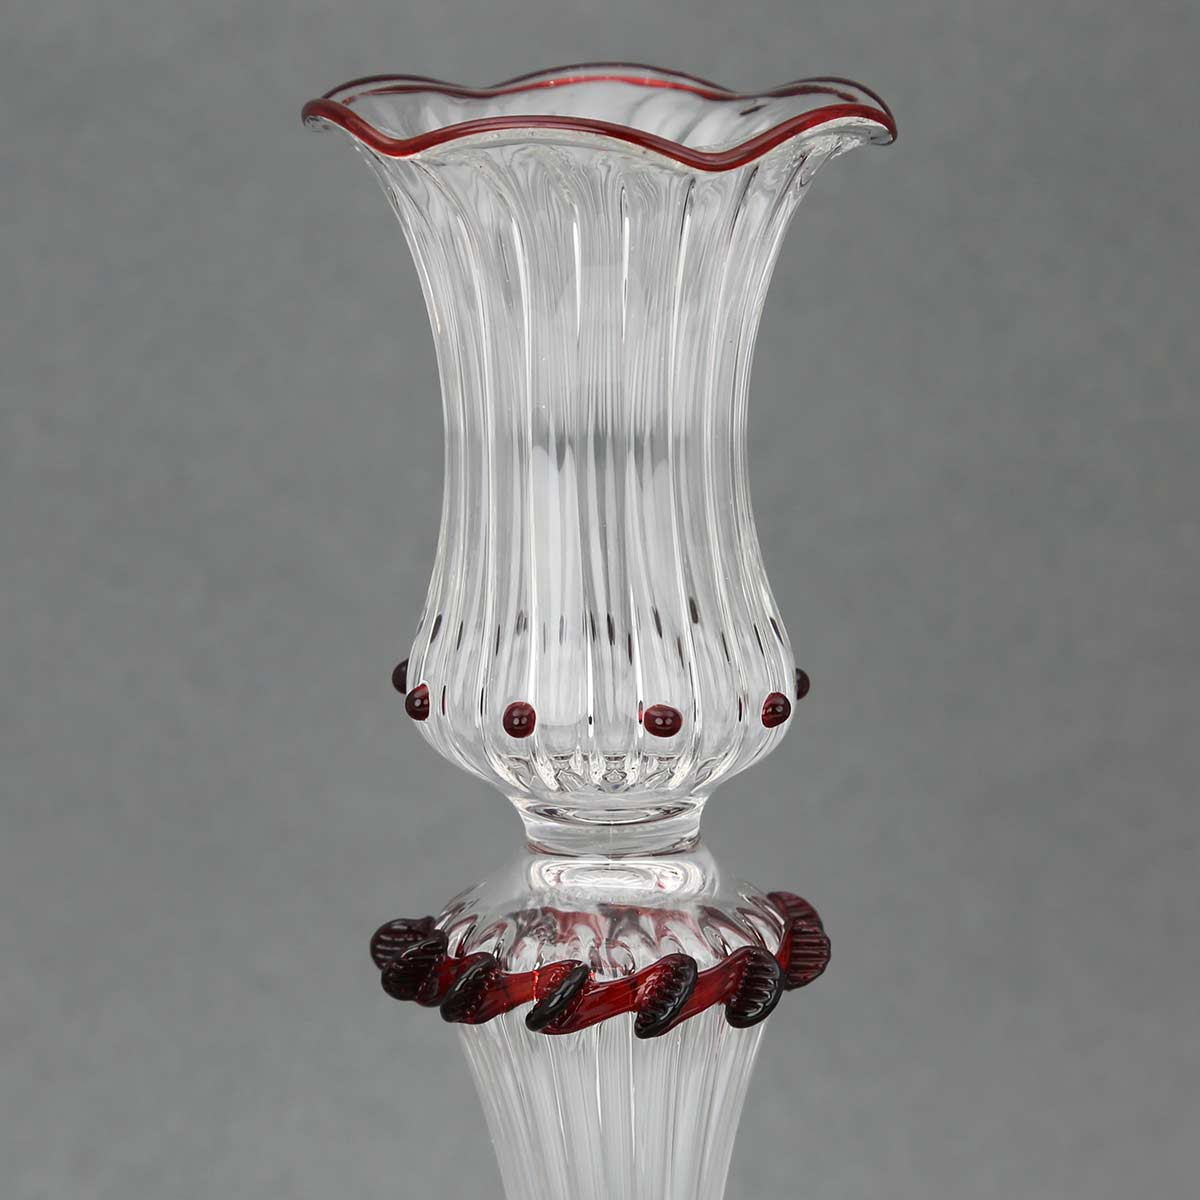 Cristallo and Red Murano Glass Candle Holder